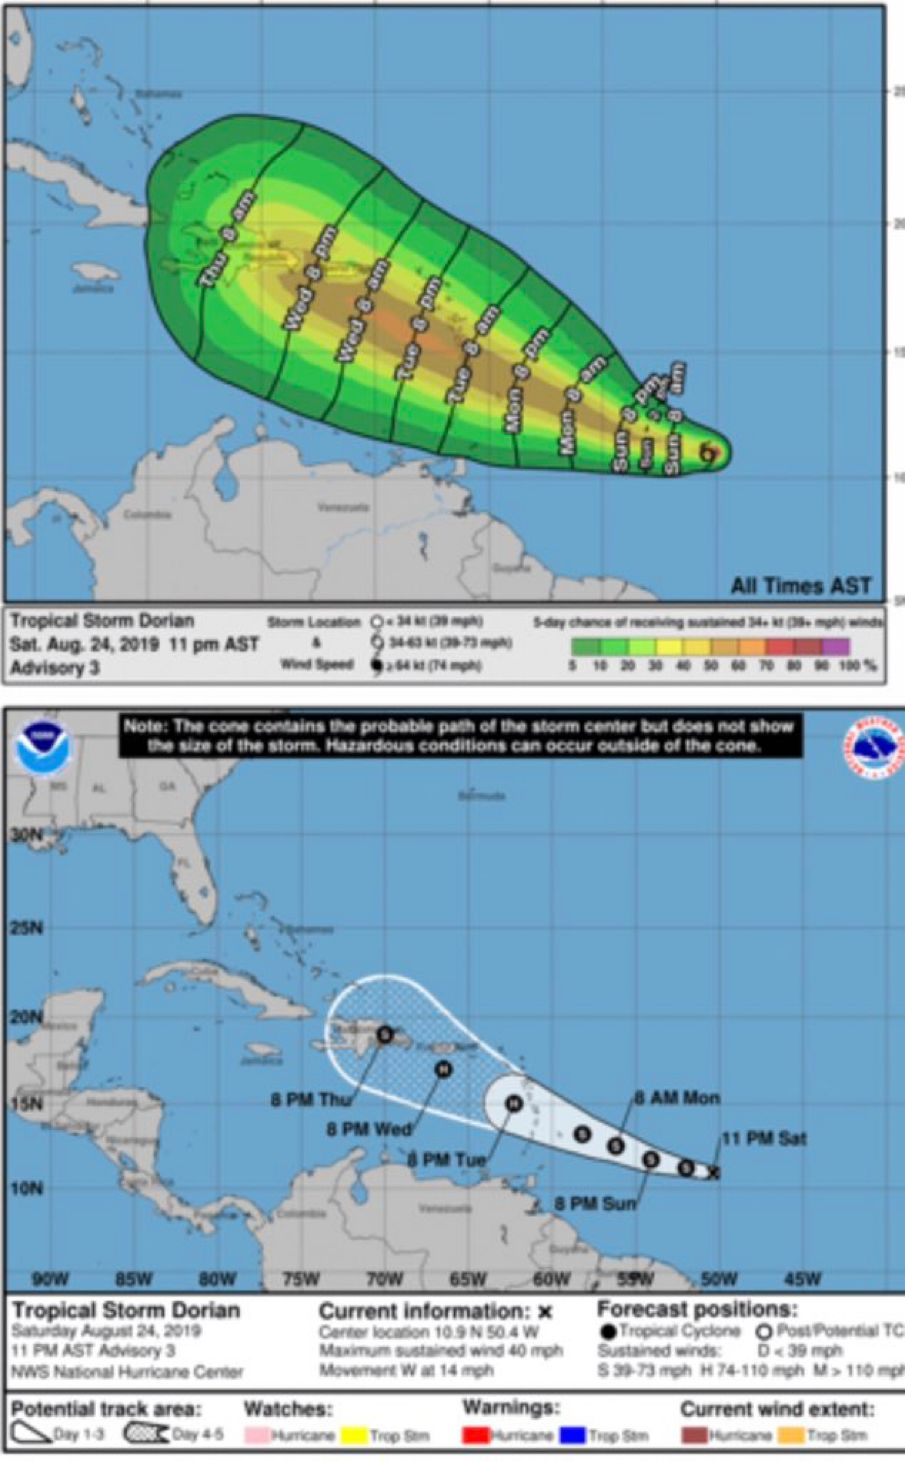 Tropical Storm Dorian Latest Update From Nhc Atlantic Has The Storm As A Hurricane Moving Over Puerto Rico By Thursday Aft St Croix Tropical Storm St Thomas